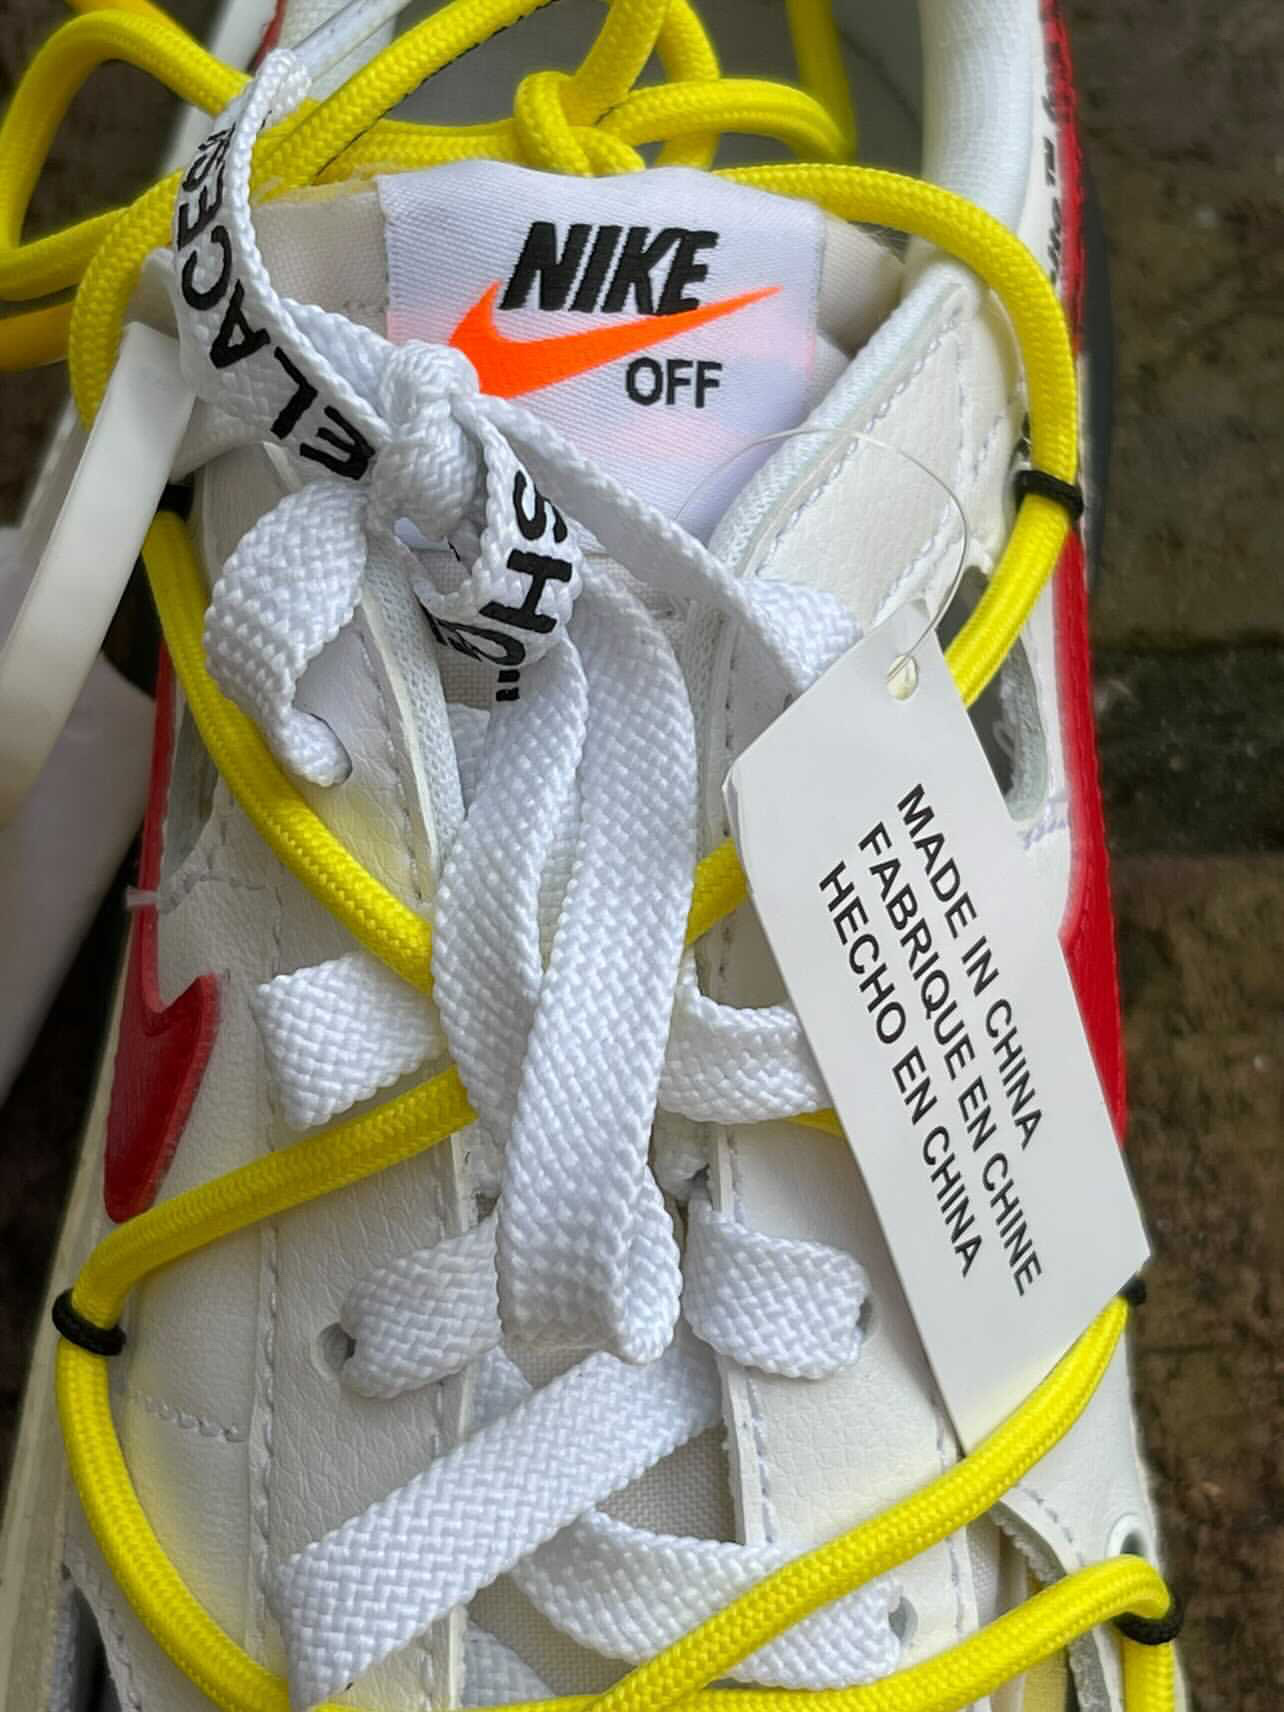 Off-White Nike Blazer Low White University Red DH7863-100 Release Date